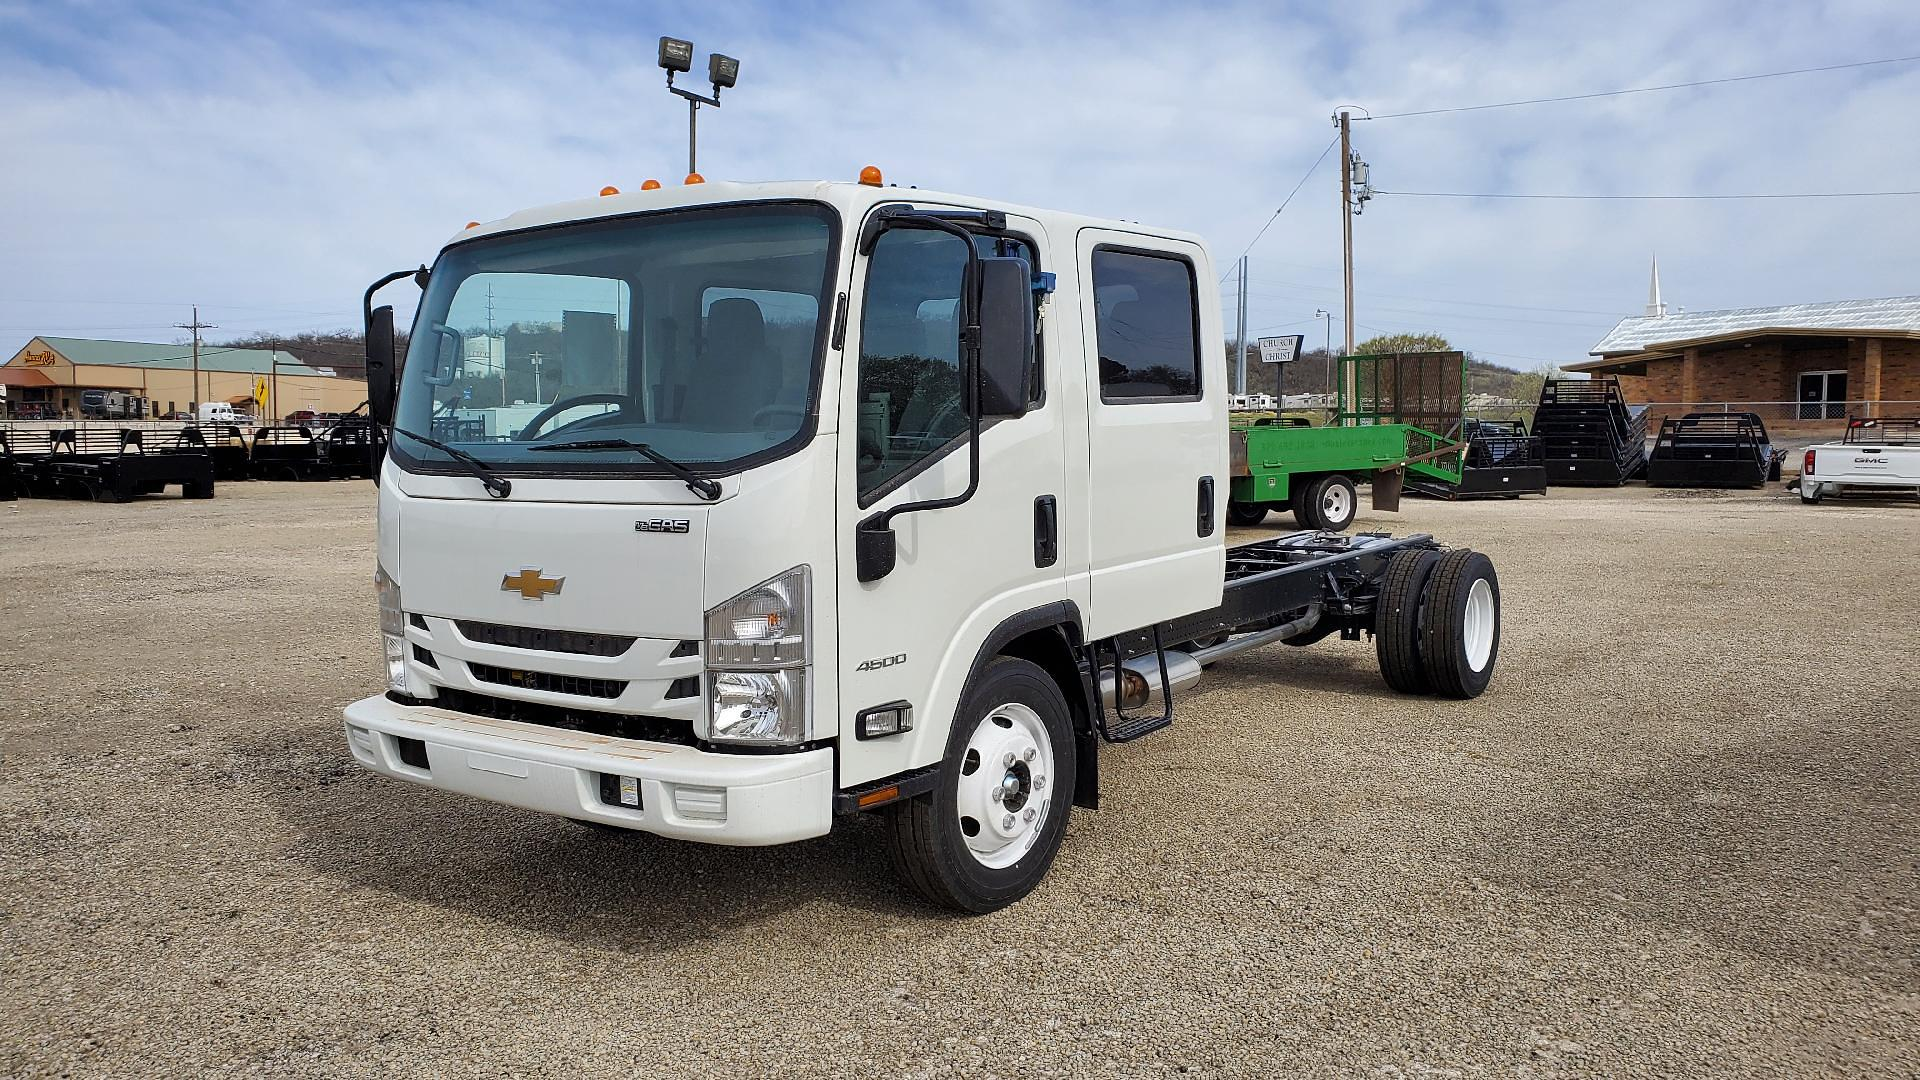 2020 Chevrolet Low Cab Forward 4x2, Cab Chassis #5103310 - photo 1